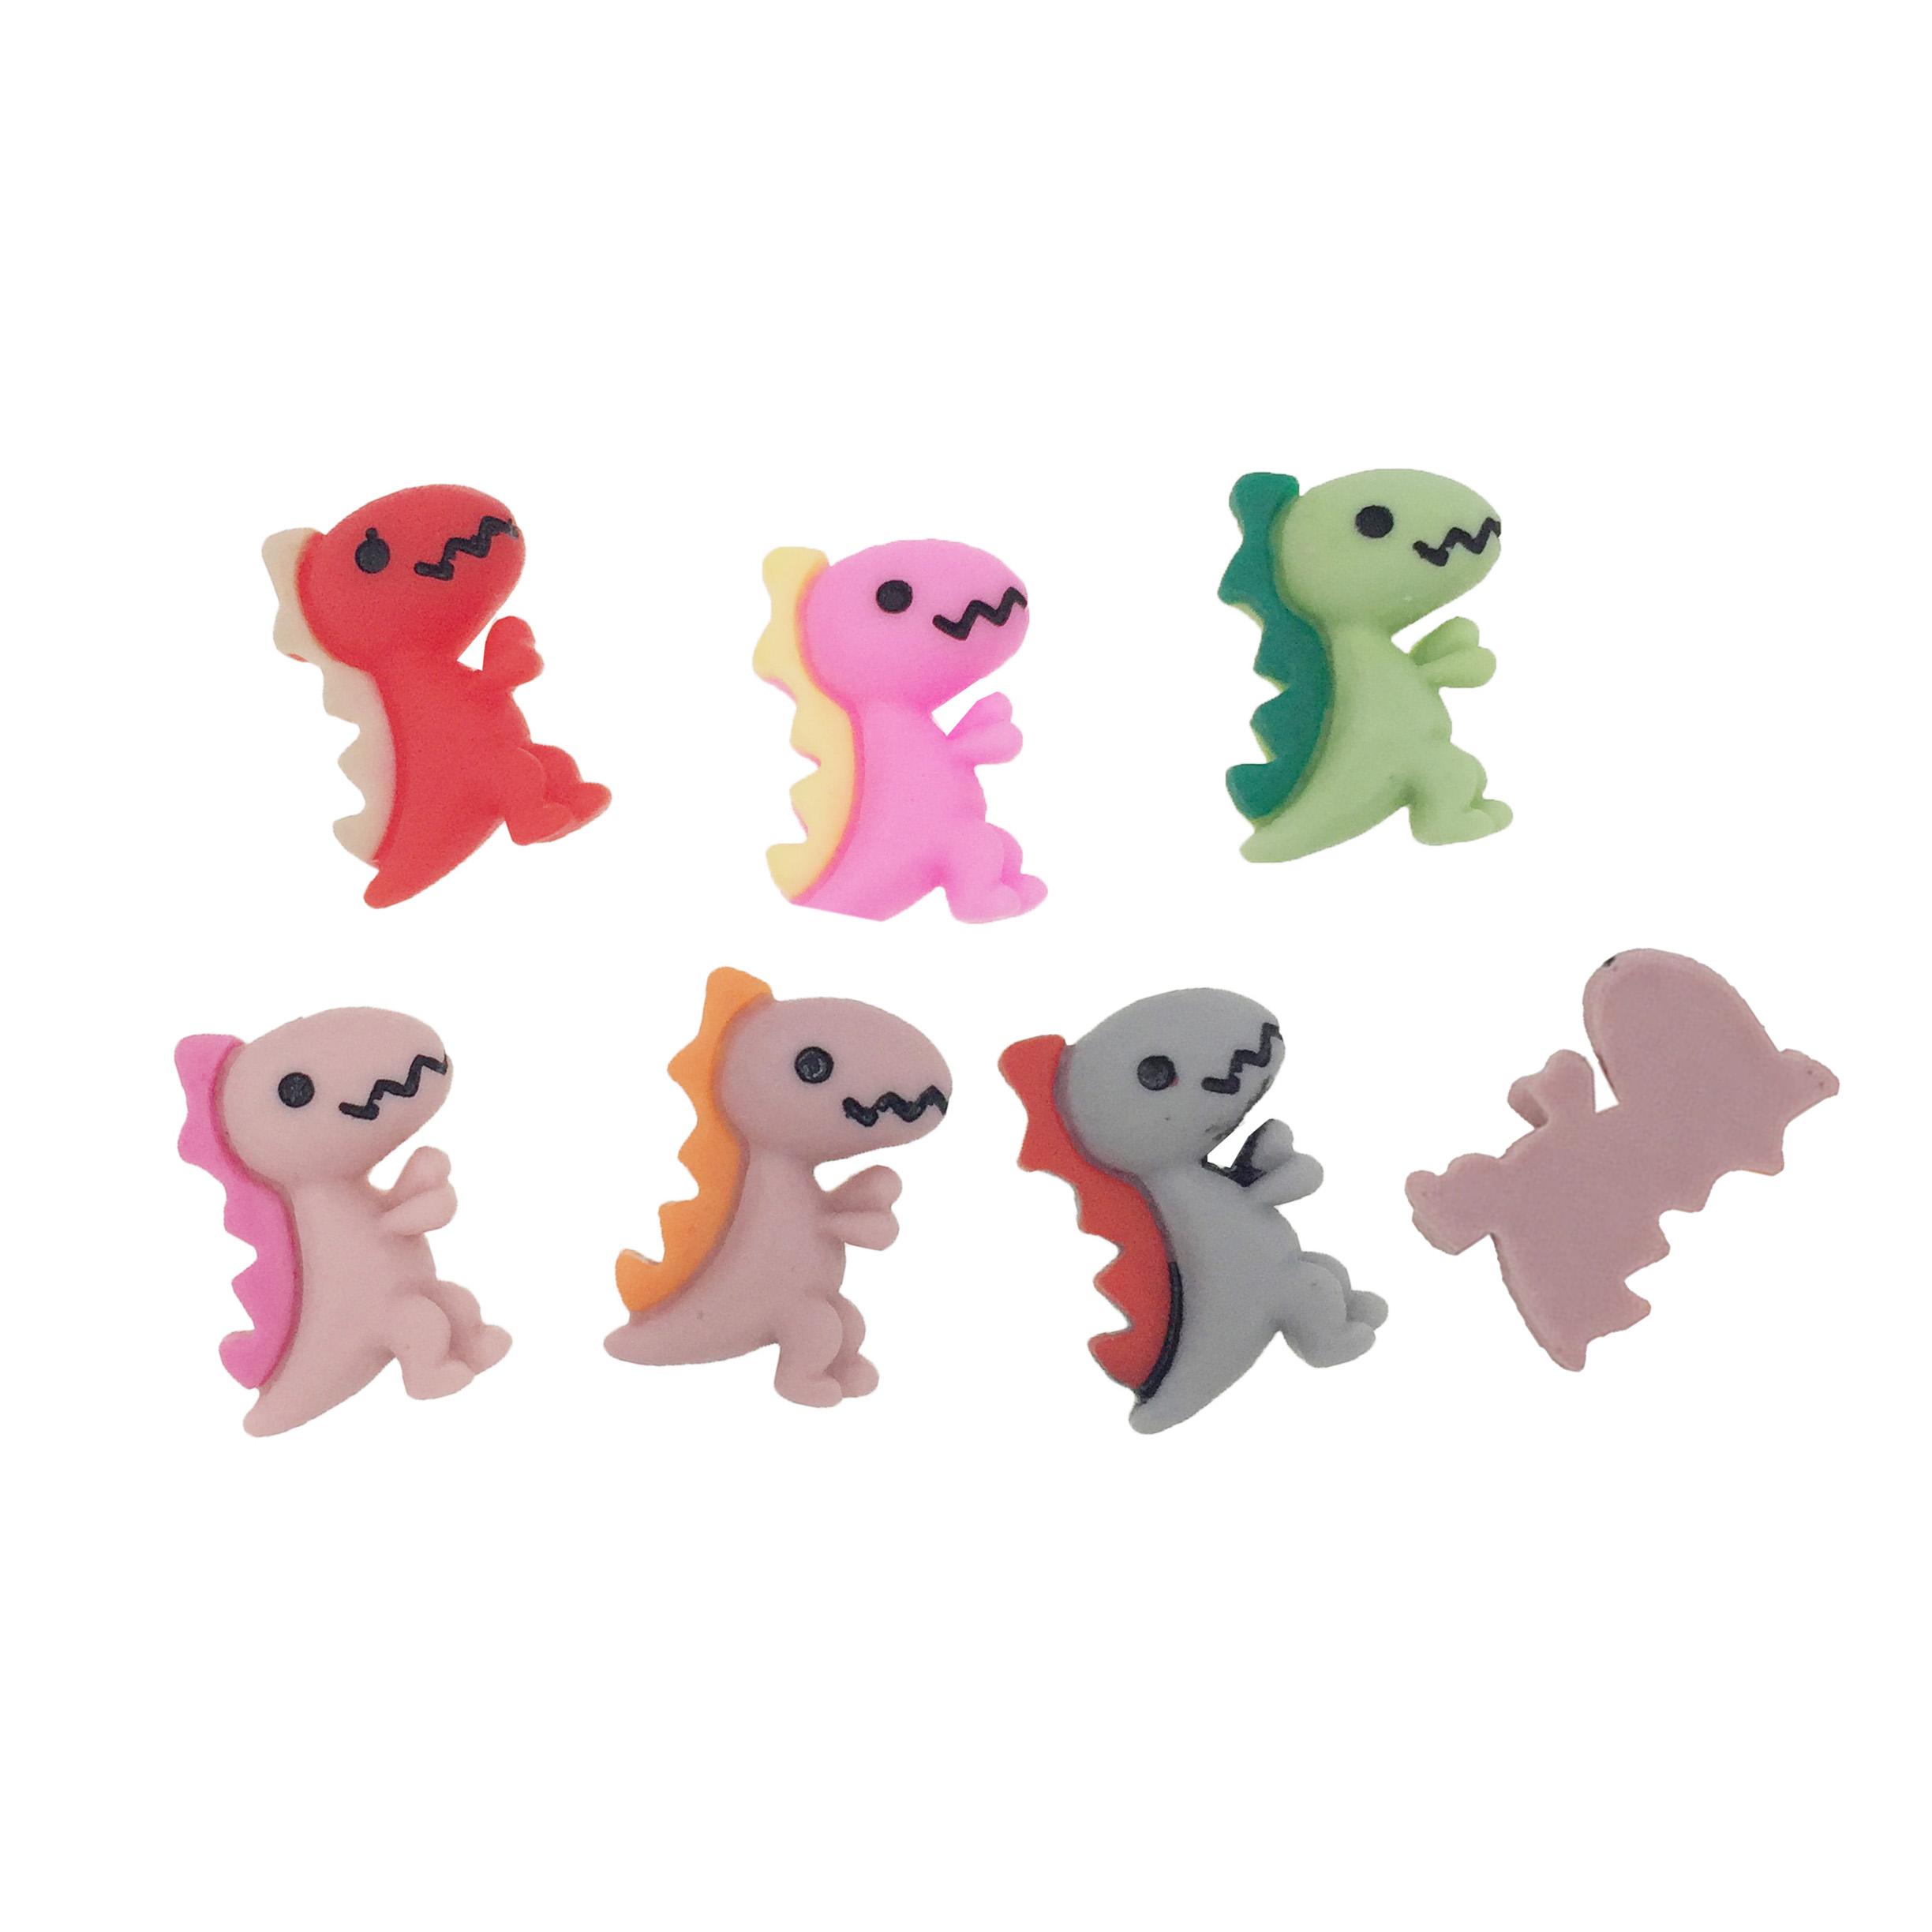 20PCS Resin Lovely Colorful Mini Dinosaur Flatback Cabochon Scrapbooking Hairbow Center Embellishment DIY Phone Accessories